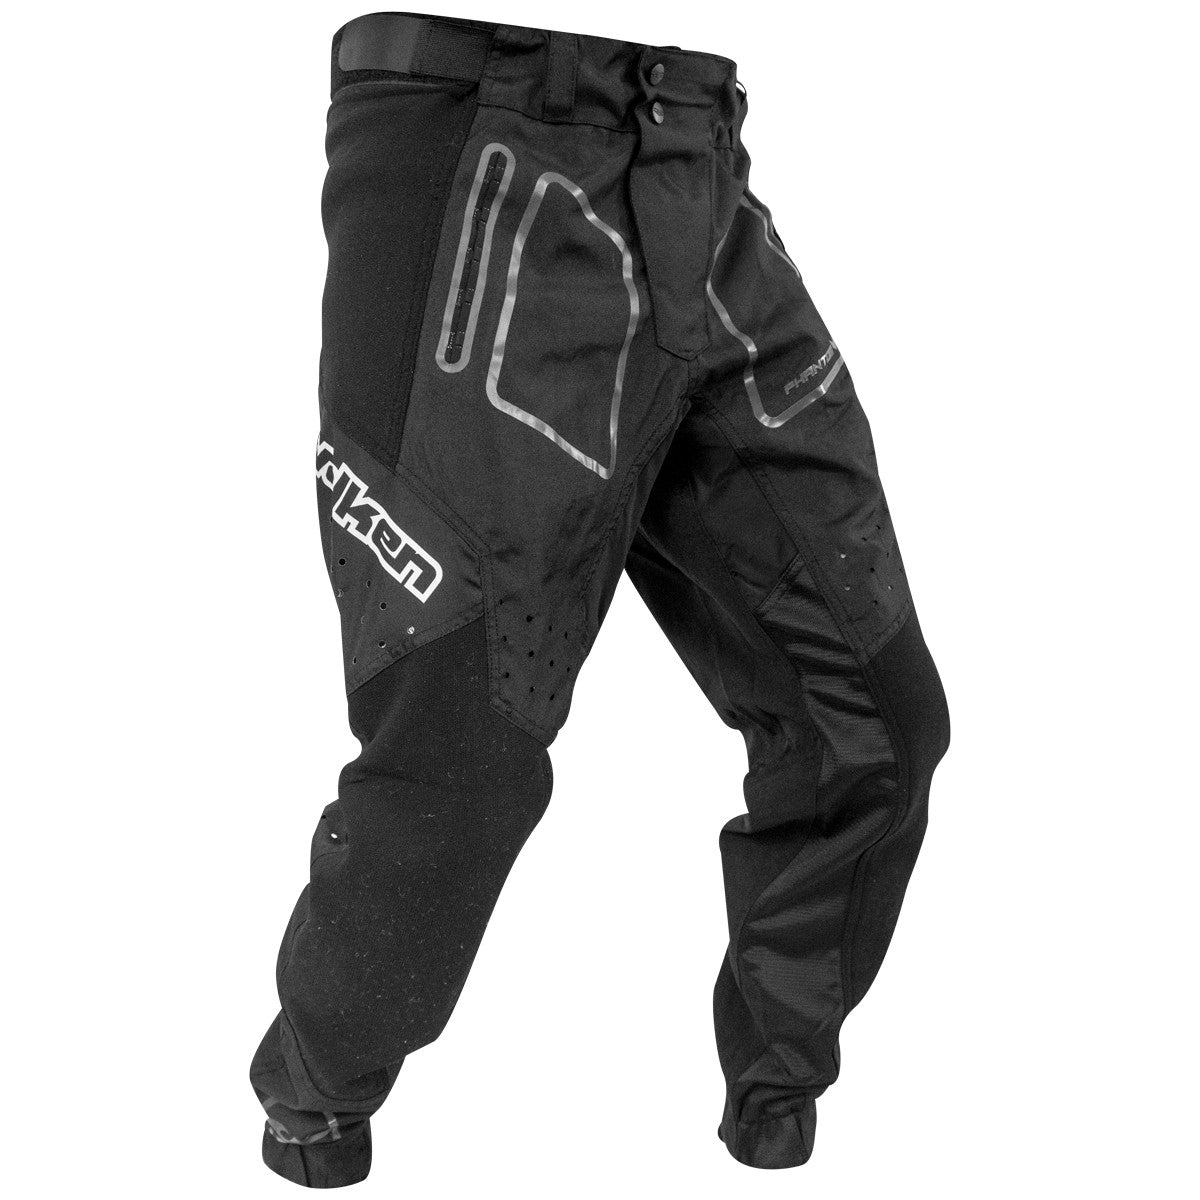 Valken Phantom Pants